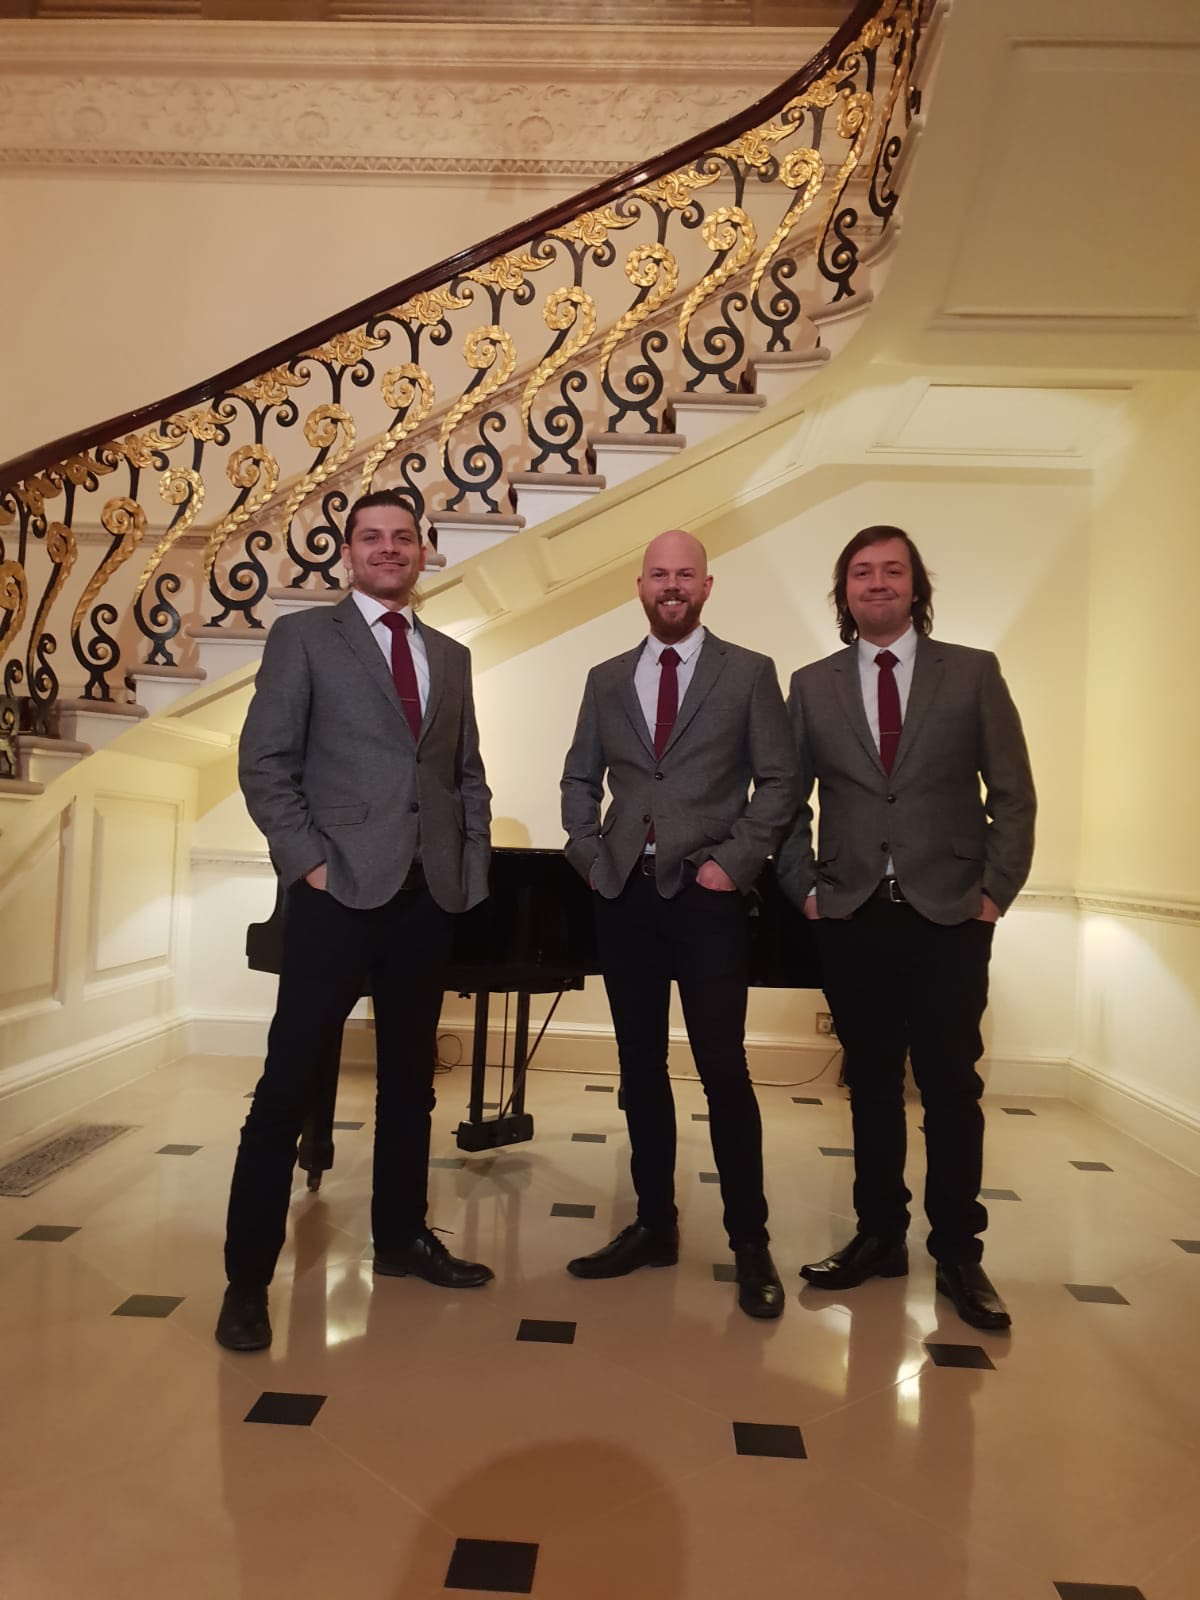 The Brogues Trio at The Ritz